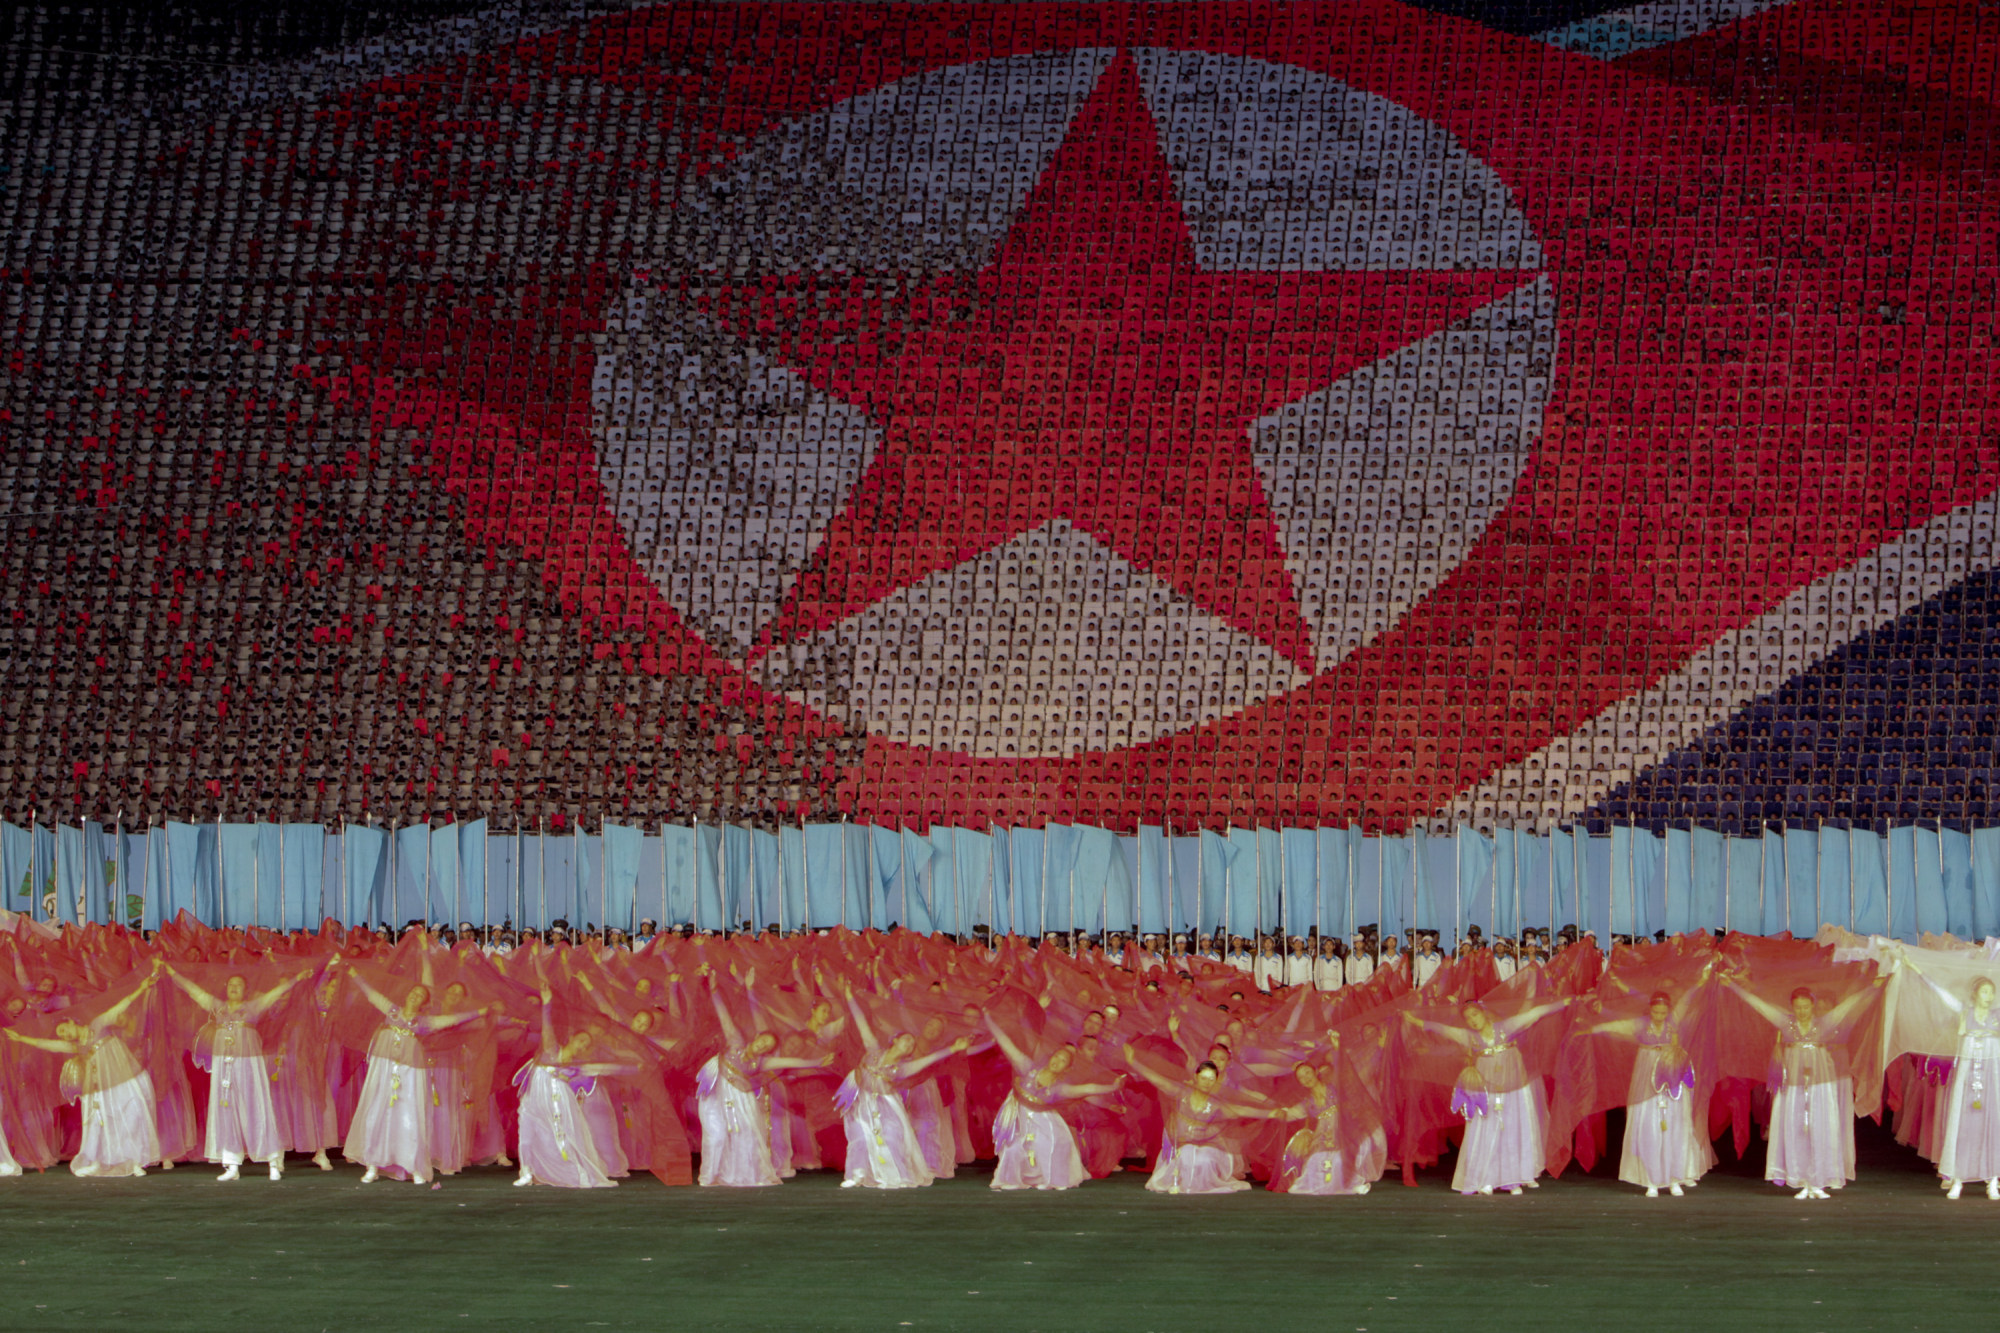 Performers dance in front of a depiction of the North Korean flag in Rungrado May Day Stadium during a ceremony commemorating the 65th anniversary of the Korea Worker's Party in Pyongyang, North Korea. Photographer: Bloomberg/Bloomberg